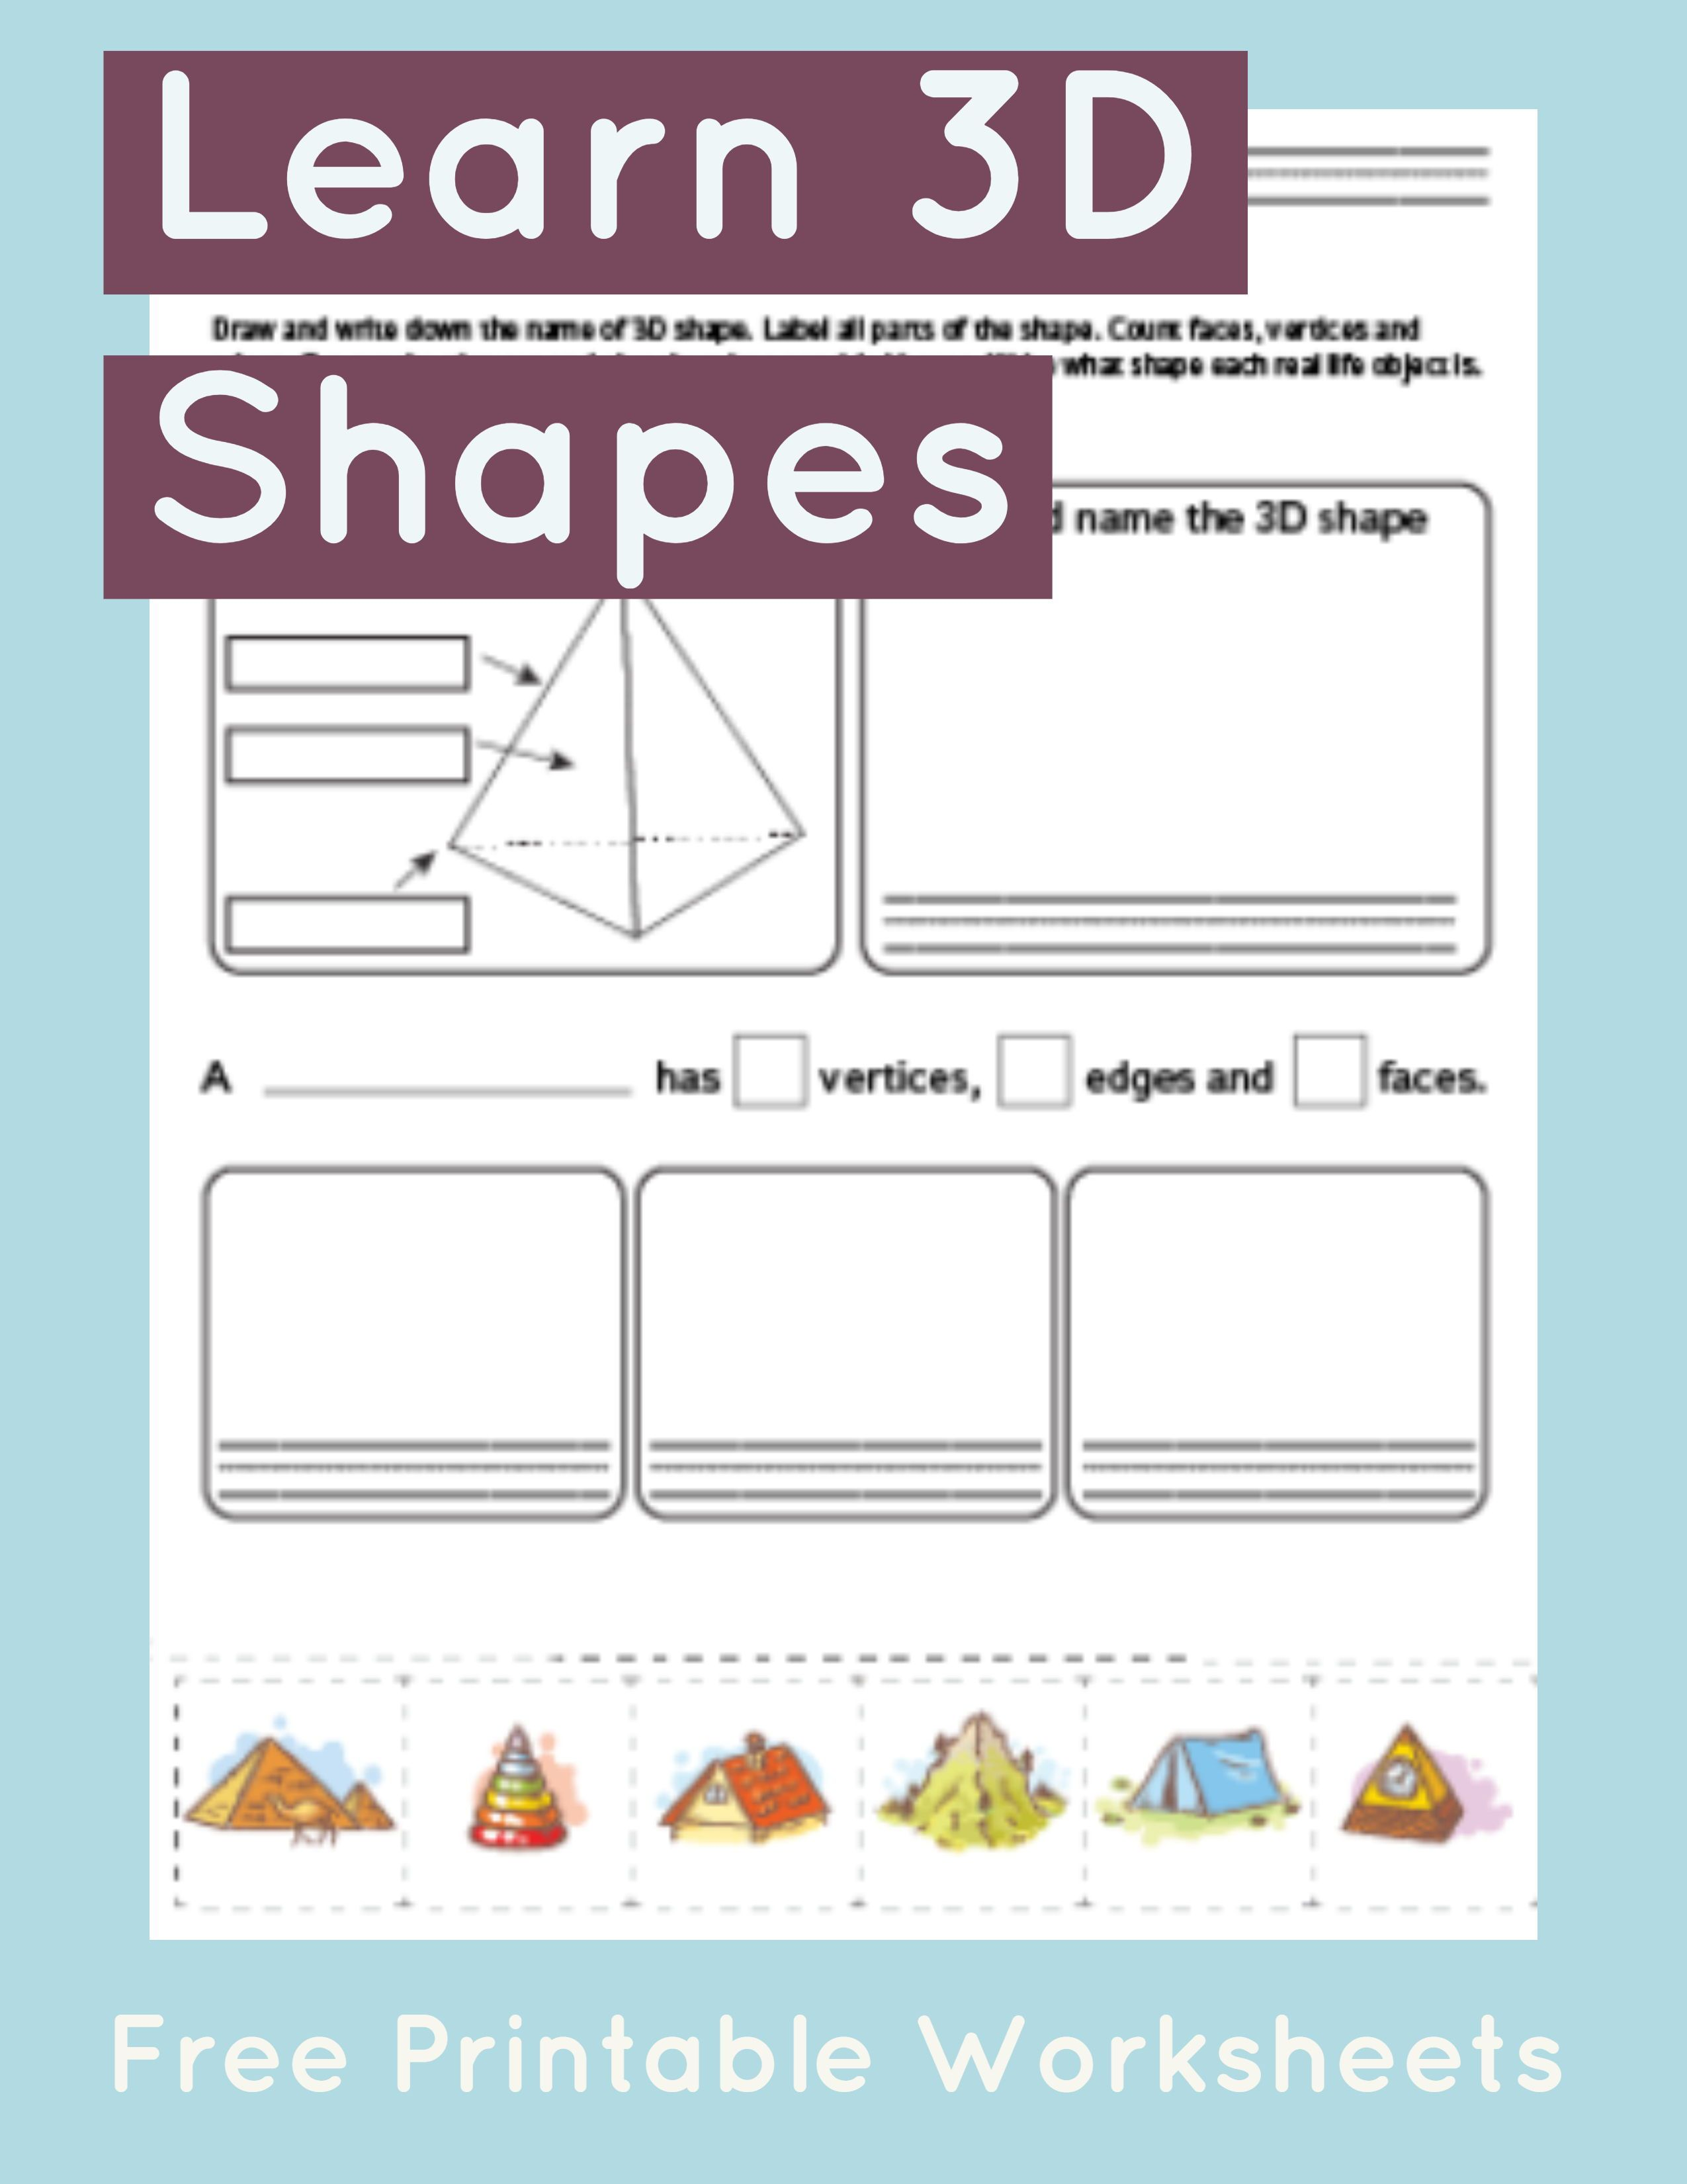 Worksheet On Shapes